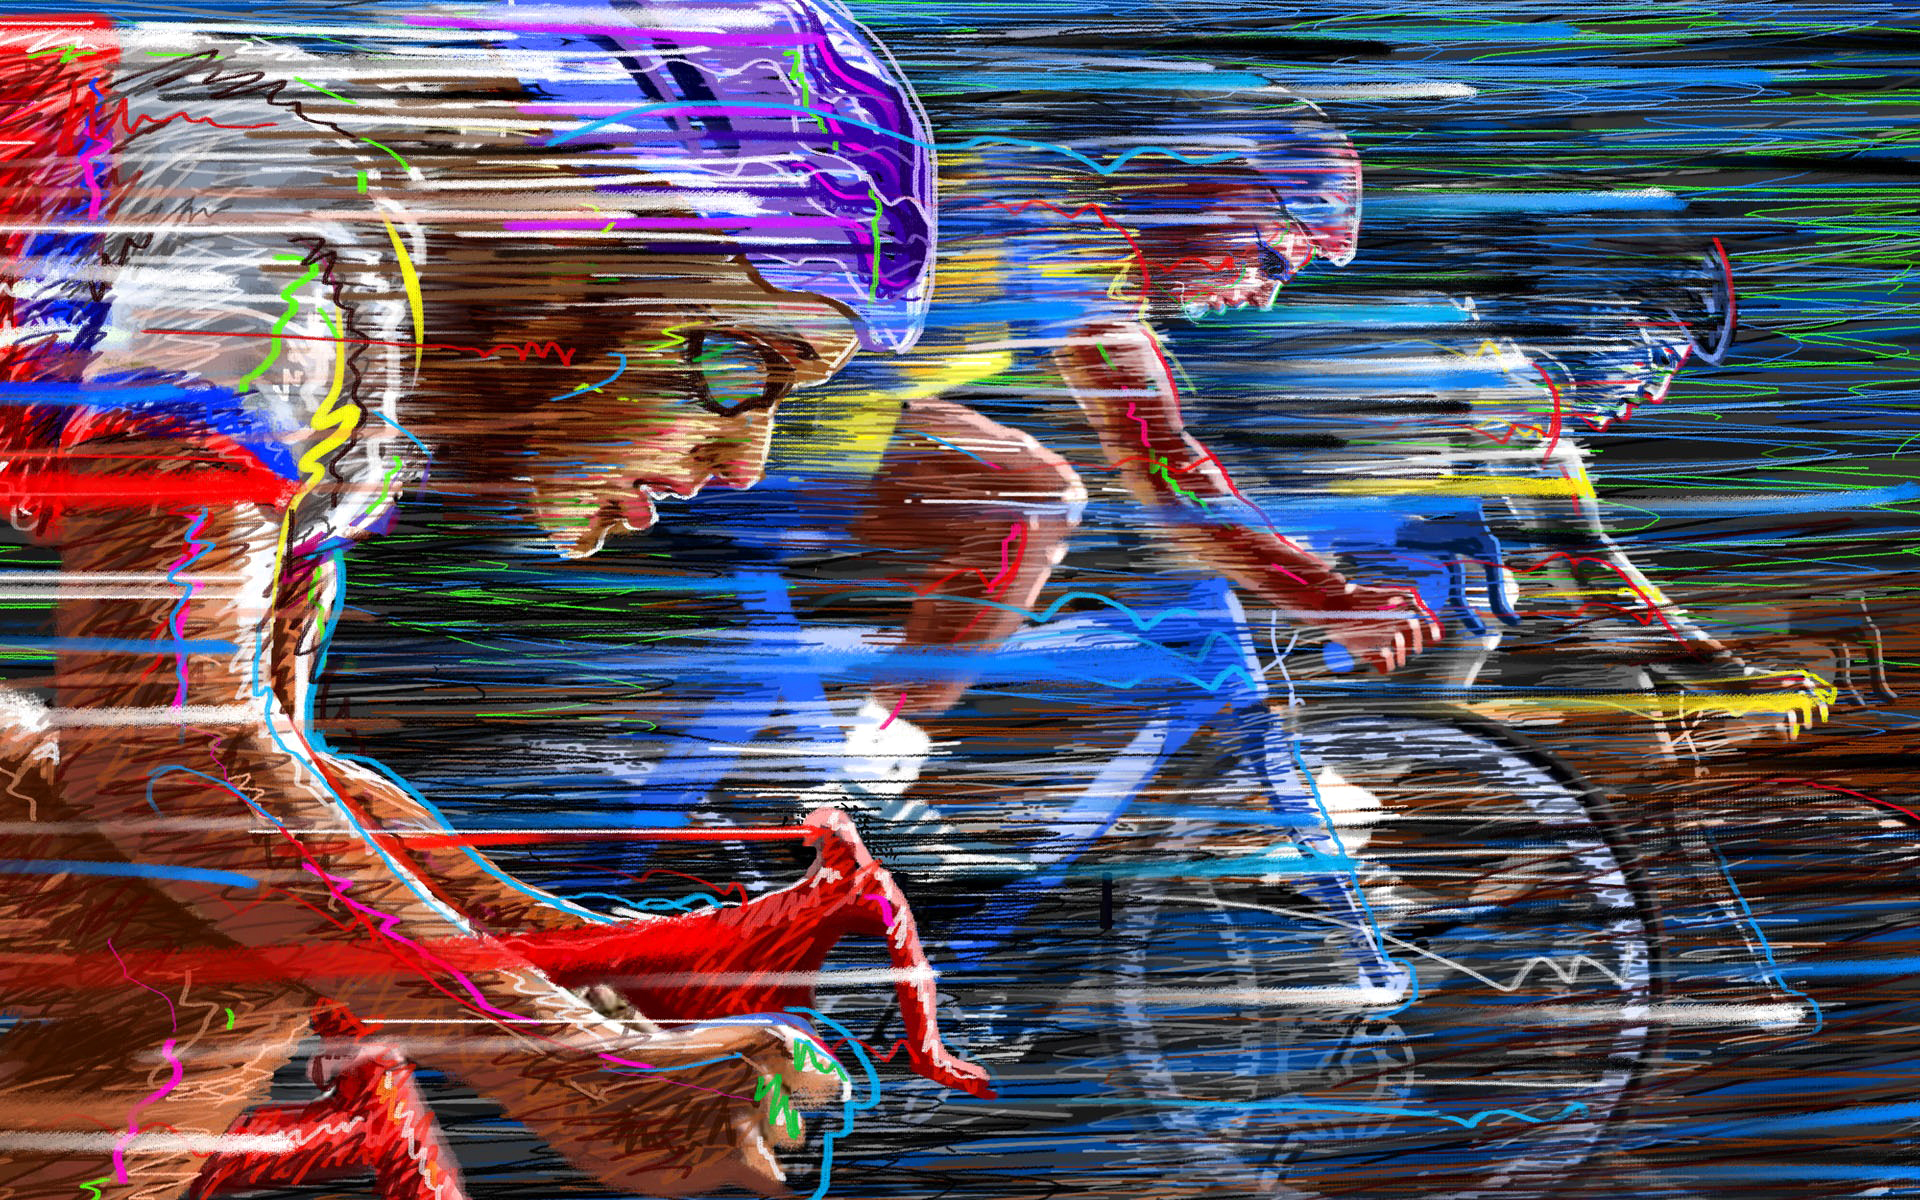 Wallpaper bike race speed color cycling vector wallpapers sports 1920x1200